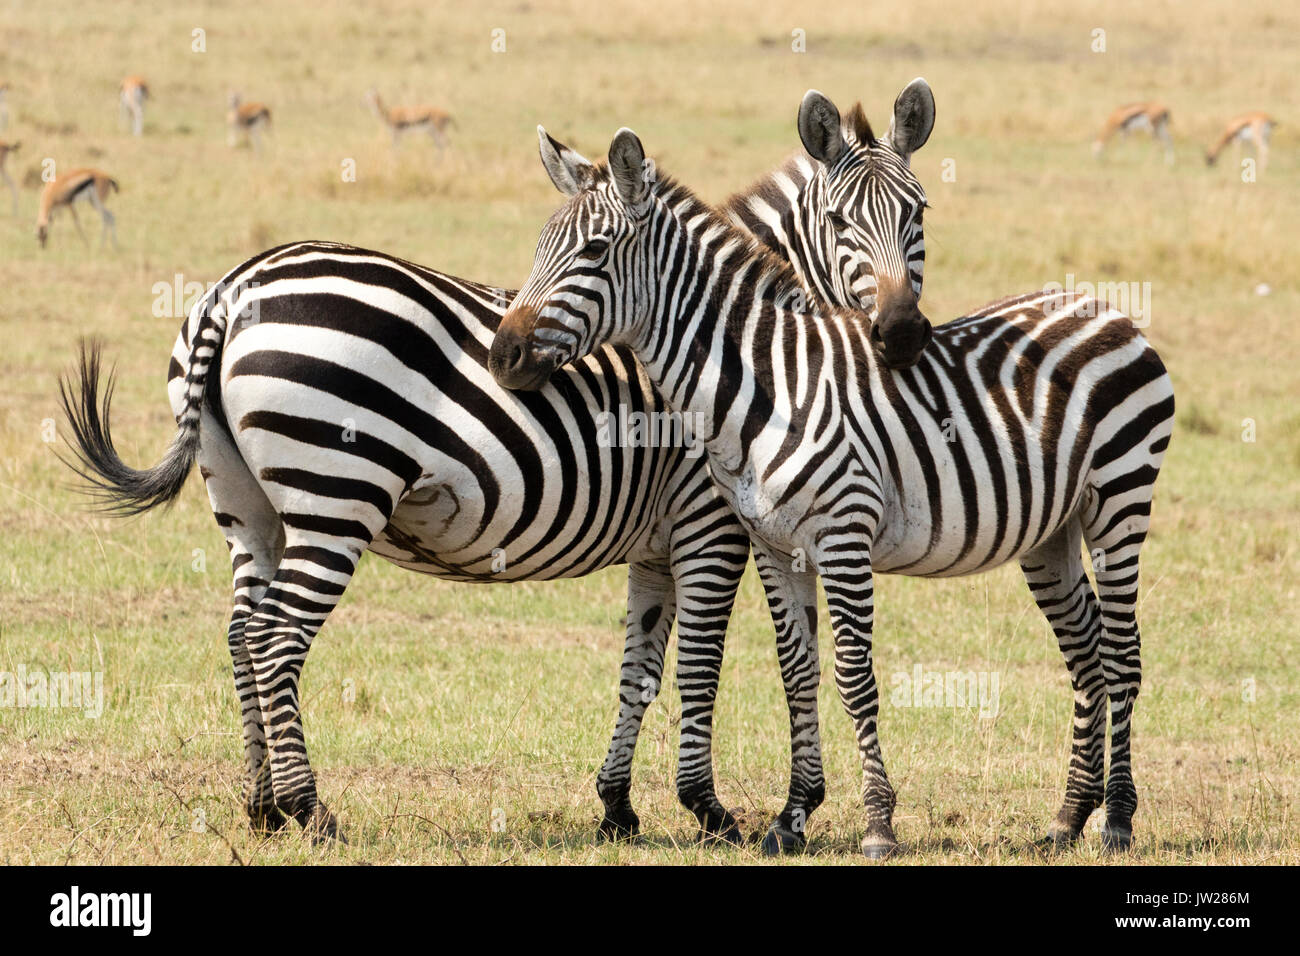 Sweet moment between Plain Zebra (Equus quagga) mother and young child, leaning on each other - Stock Image